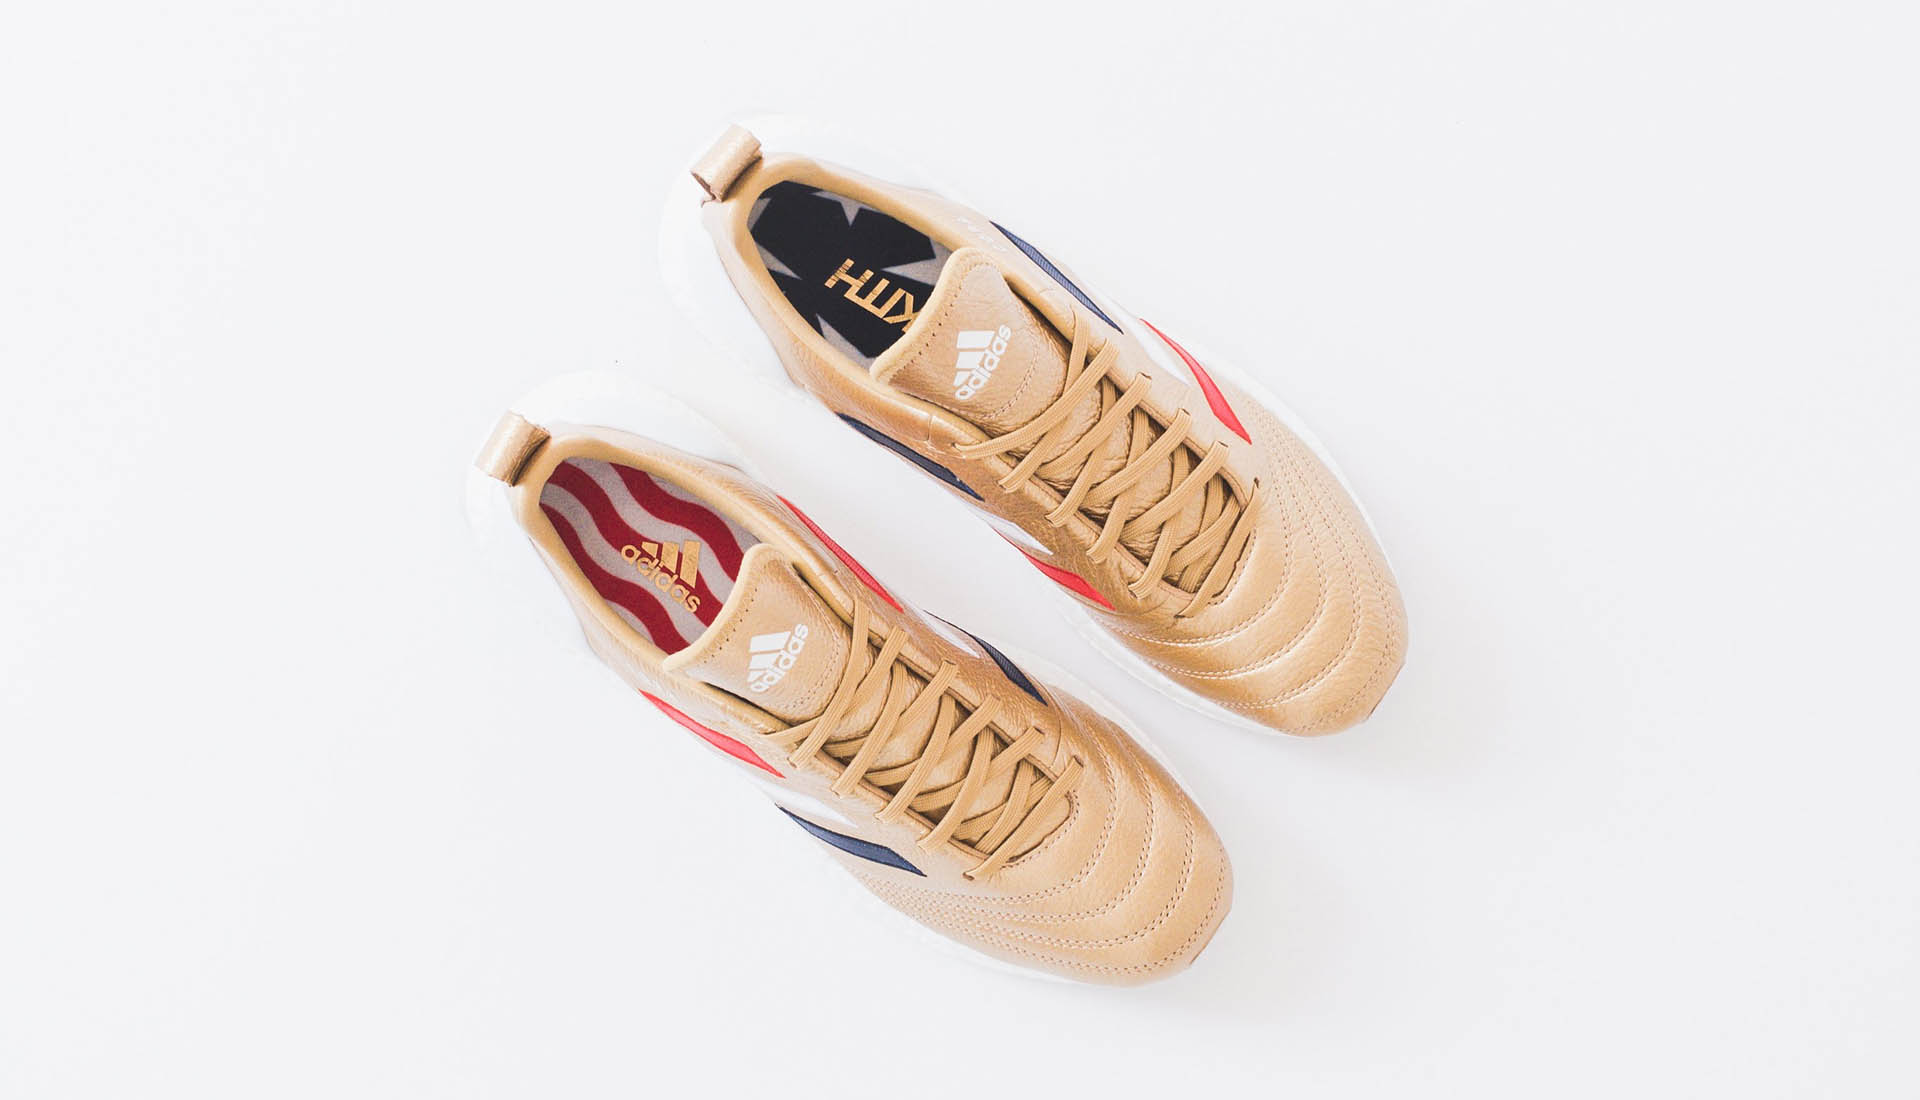 946653837147b KITH Reveal New ACE 16+   COPA Mundial 18 UltraBOOST - SoccerBible